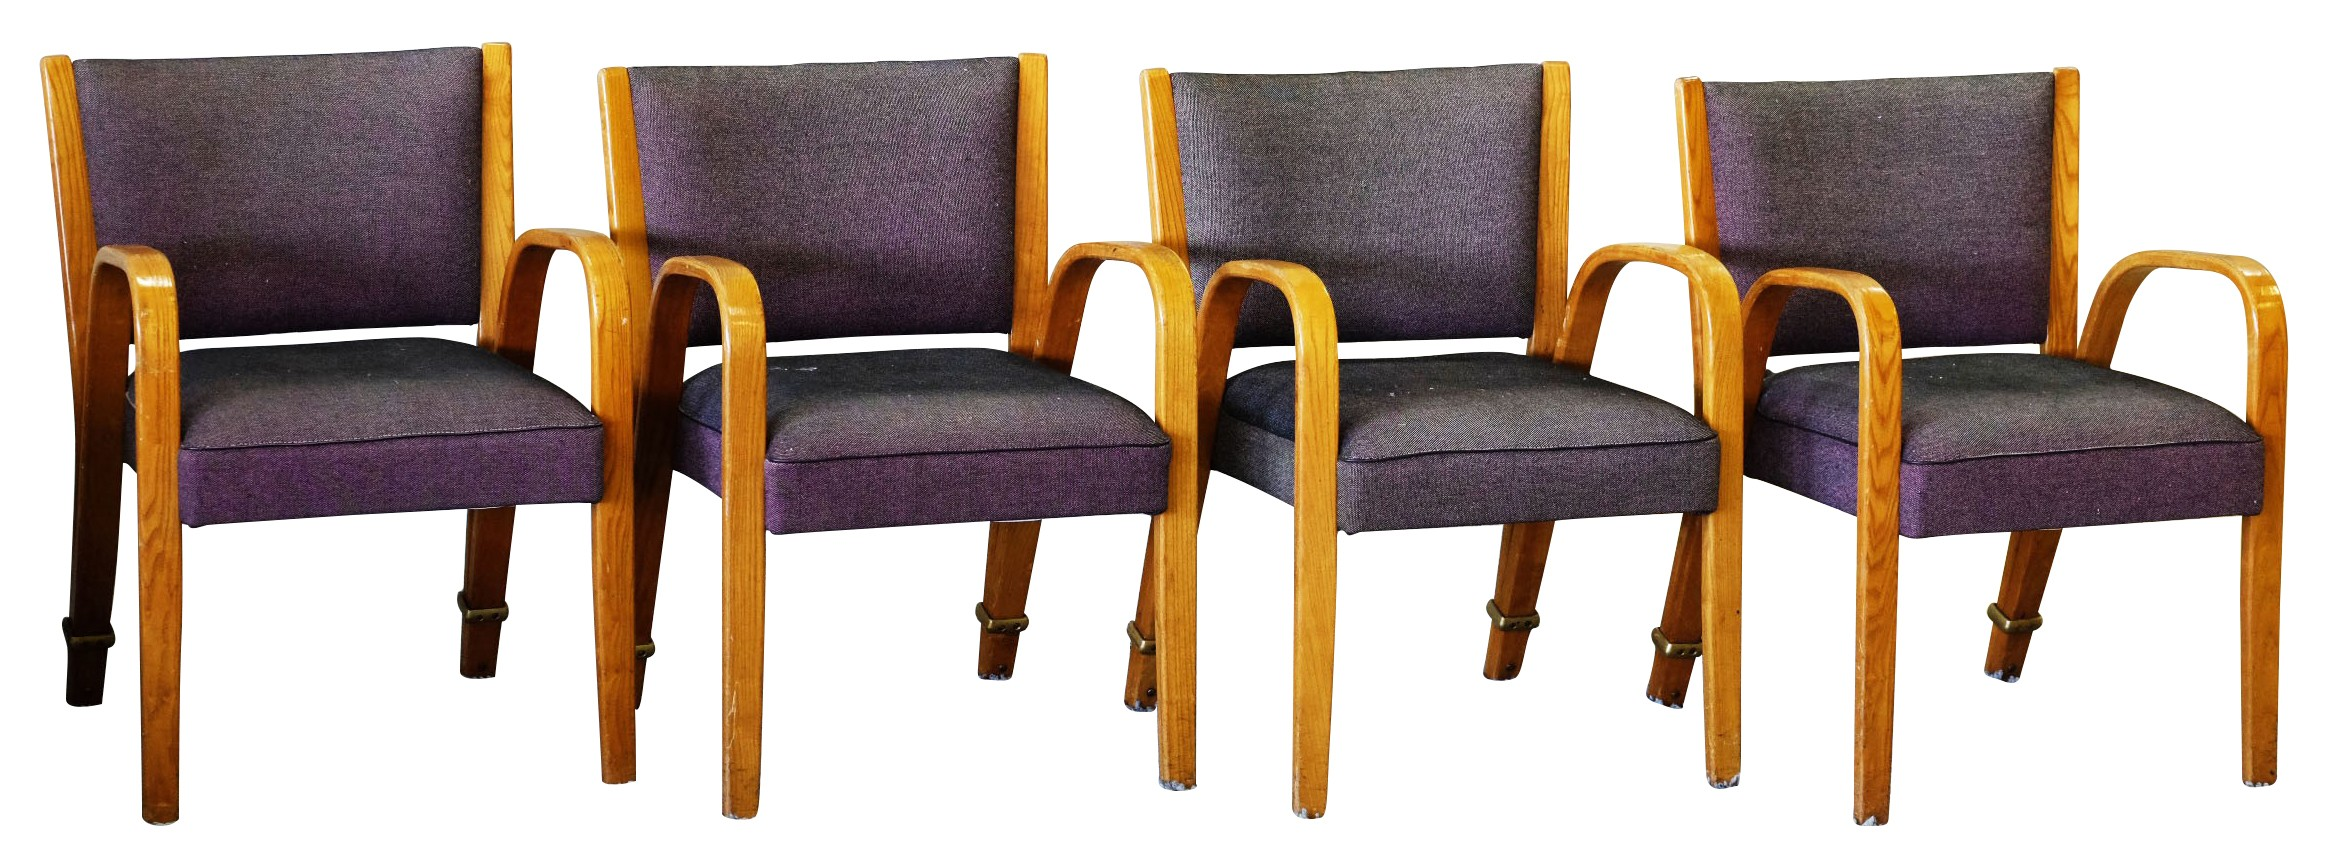 set of 4 armchairs bow wood manufacturer steiner 1950s design market. Black Bedroom Furniture Sets. Home Design Ideas